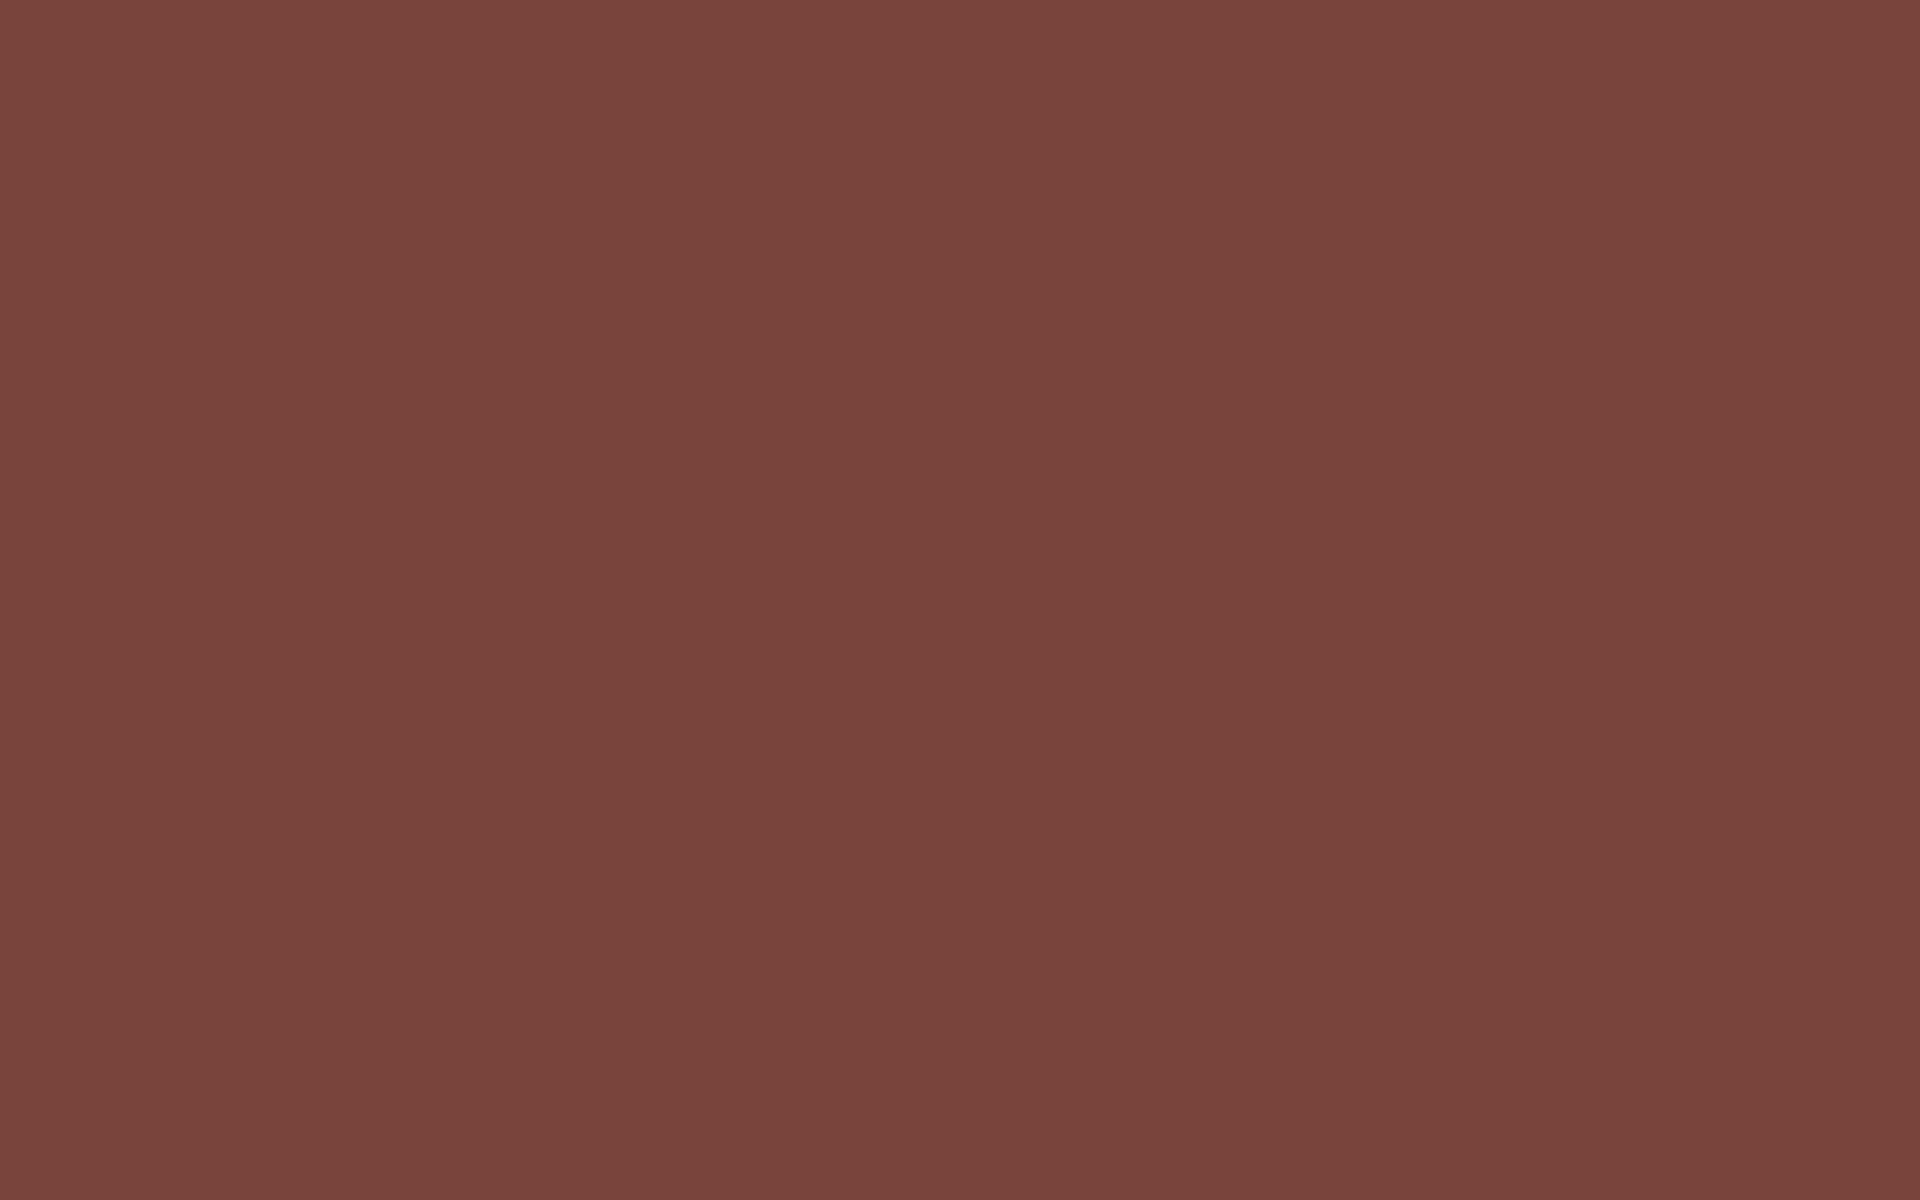 1920x1200 Medium Tuscan Red Solid Color Background